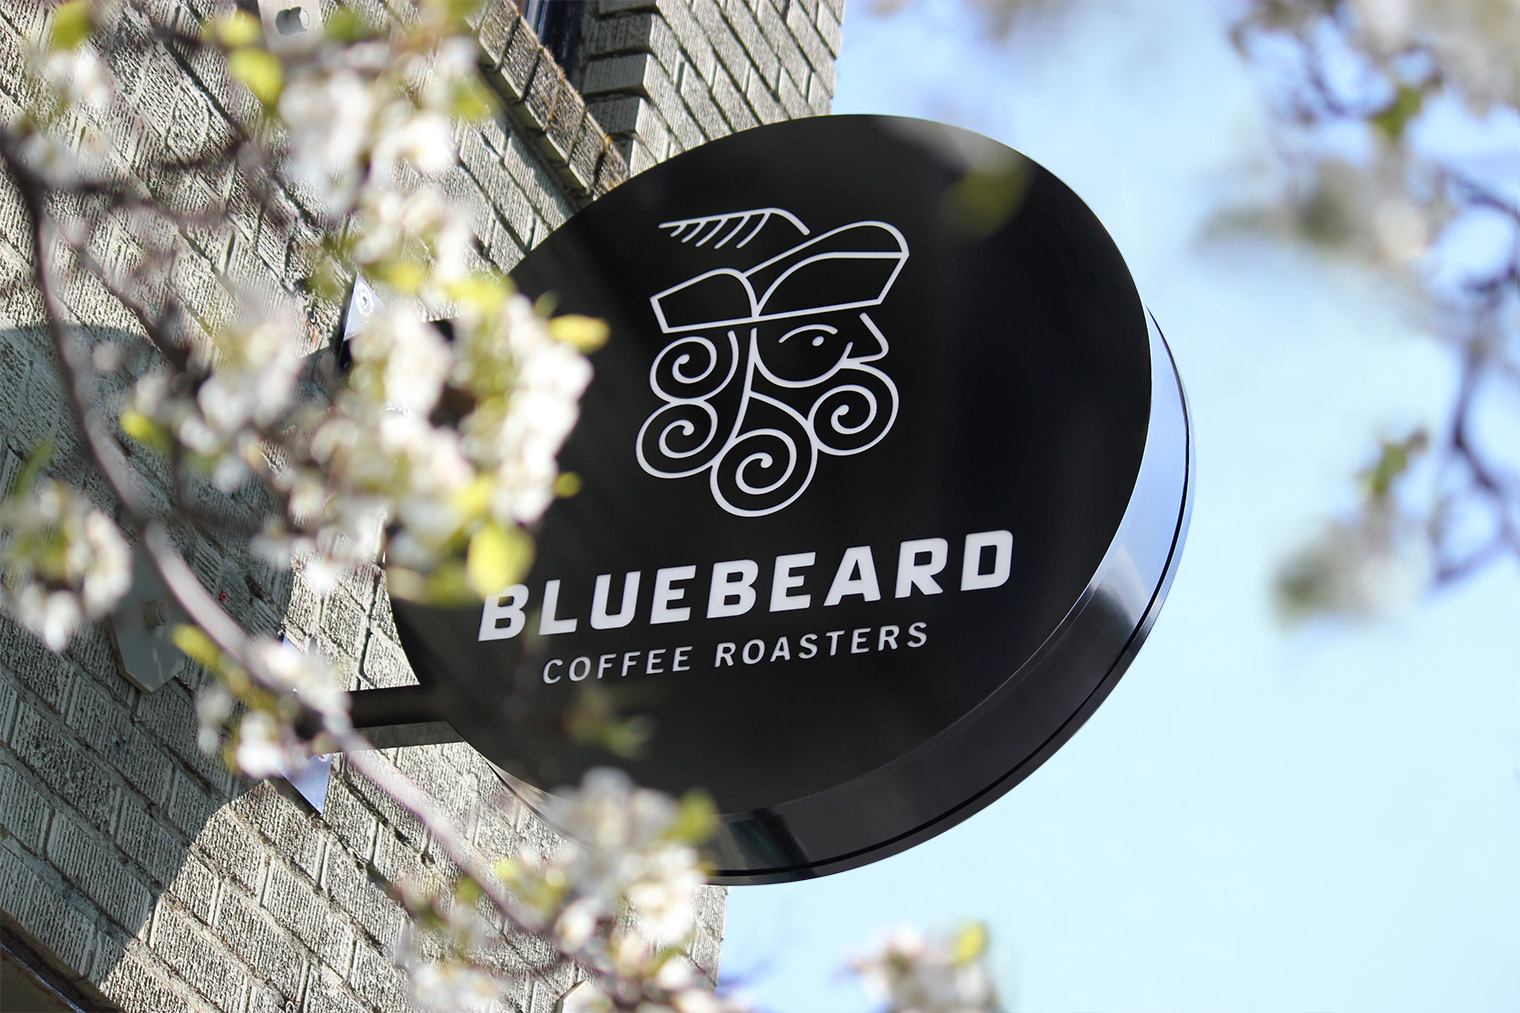 Bluebeard Coffee Roasters sign